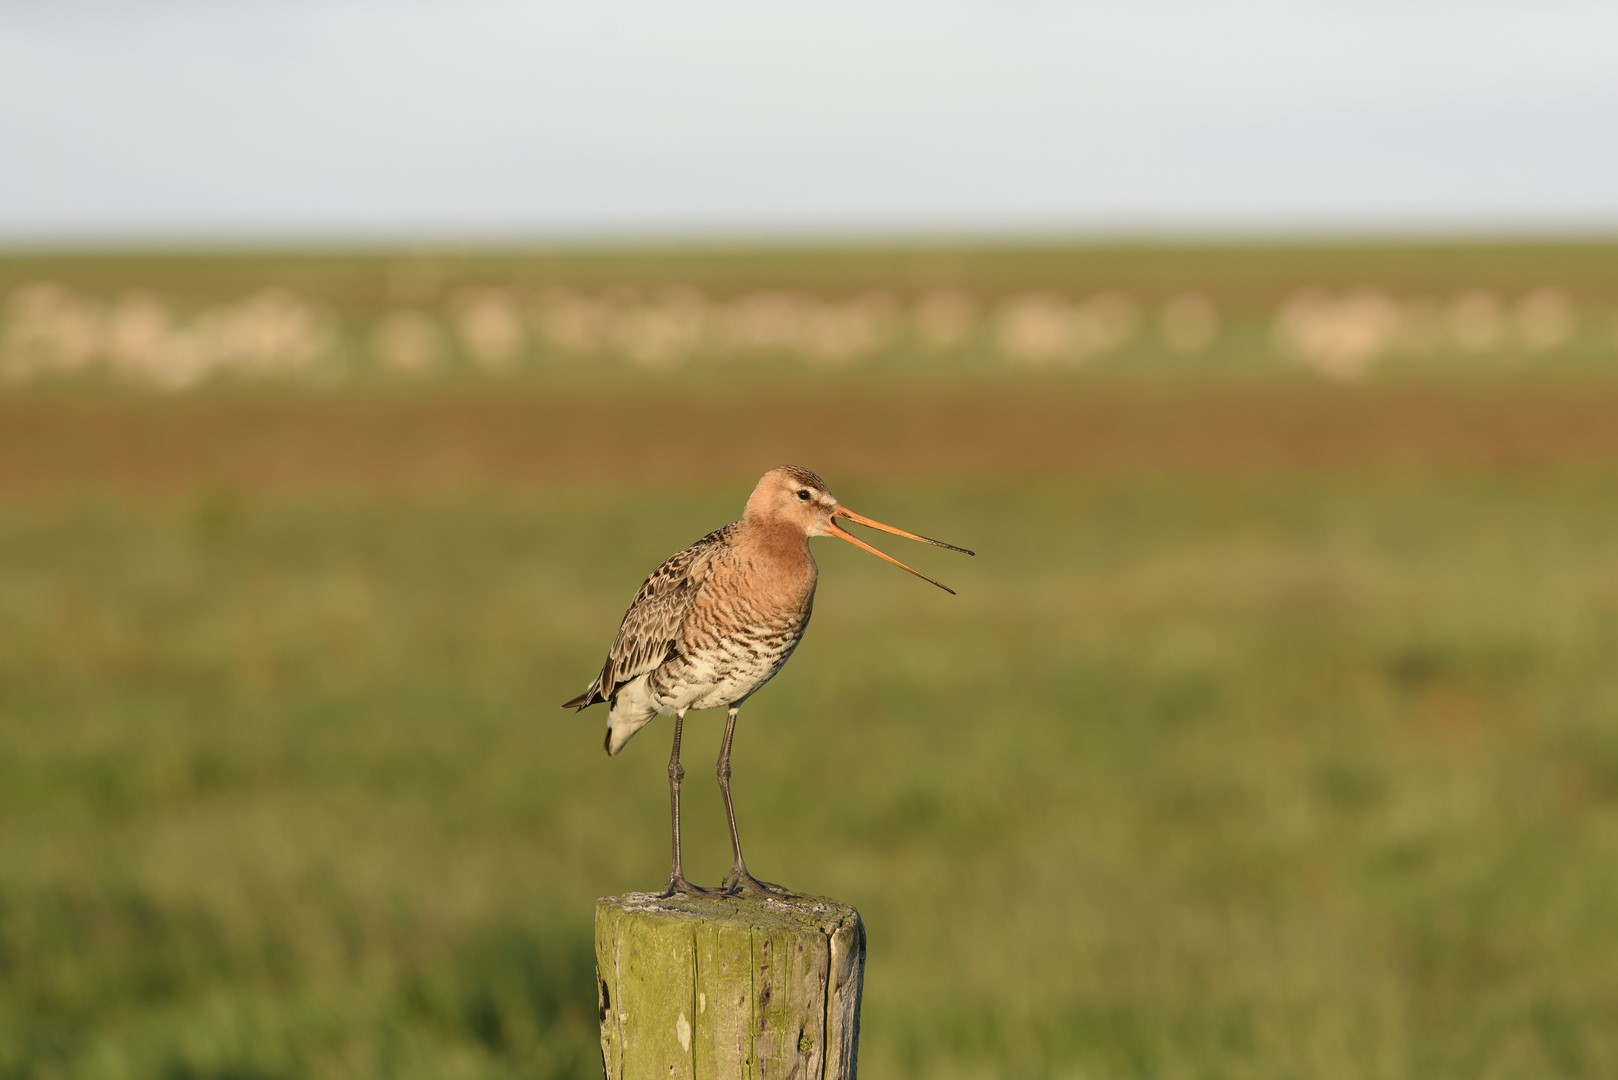 Gotwit sits on pole with its beak open, meadow sheep blurry background